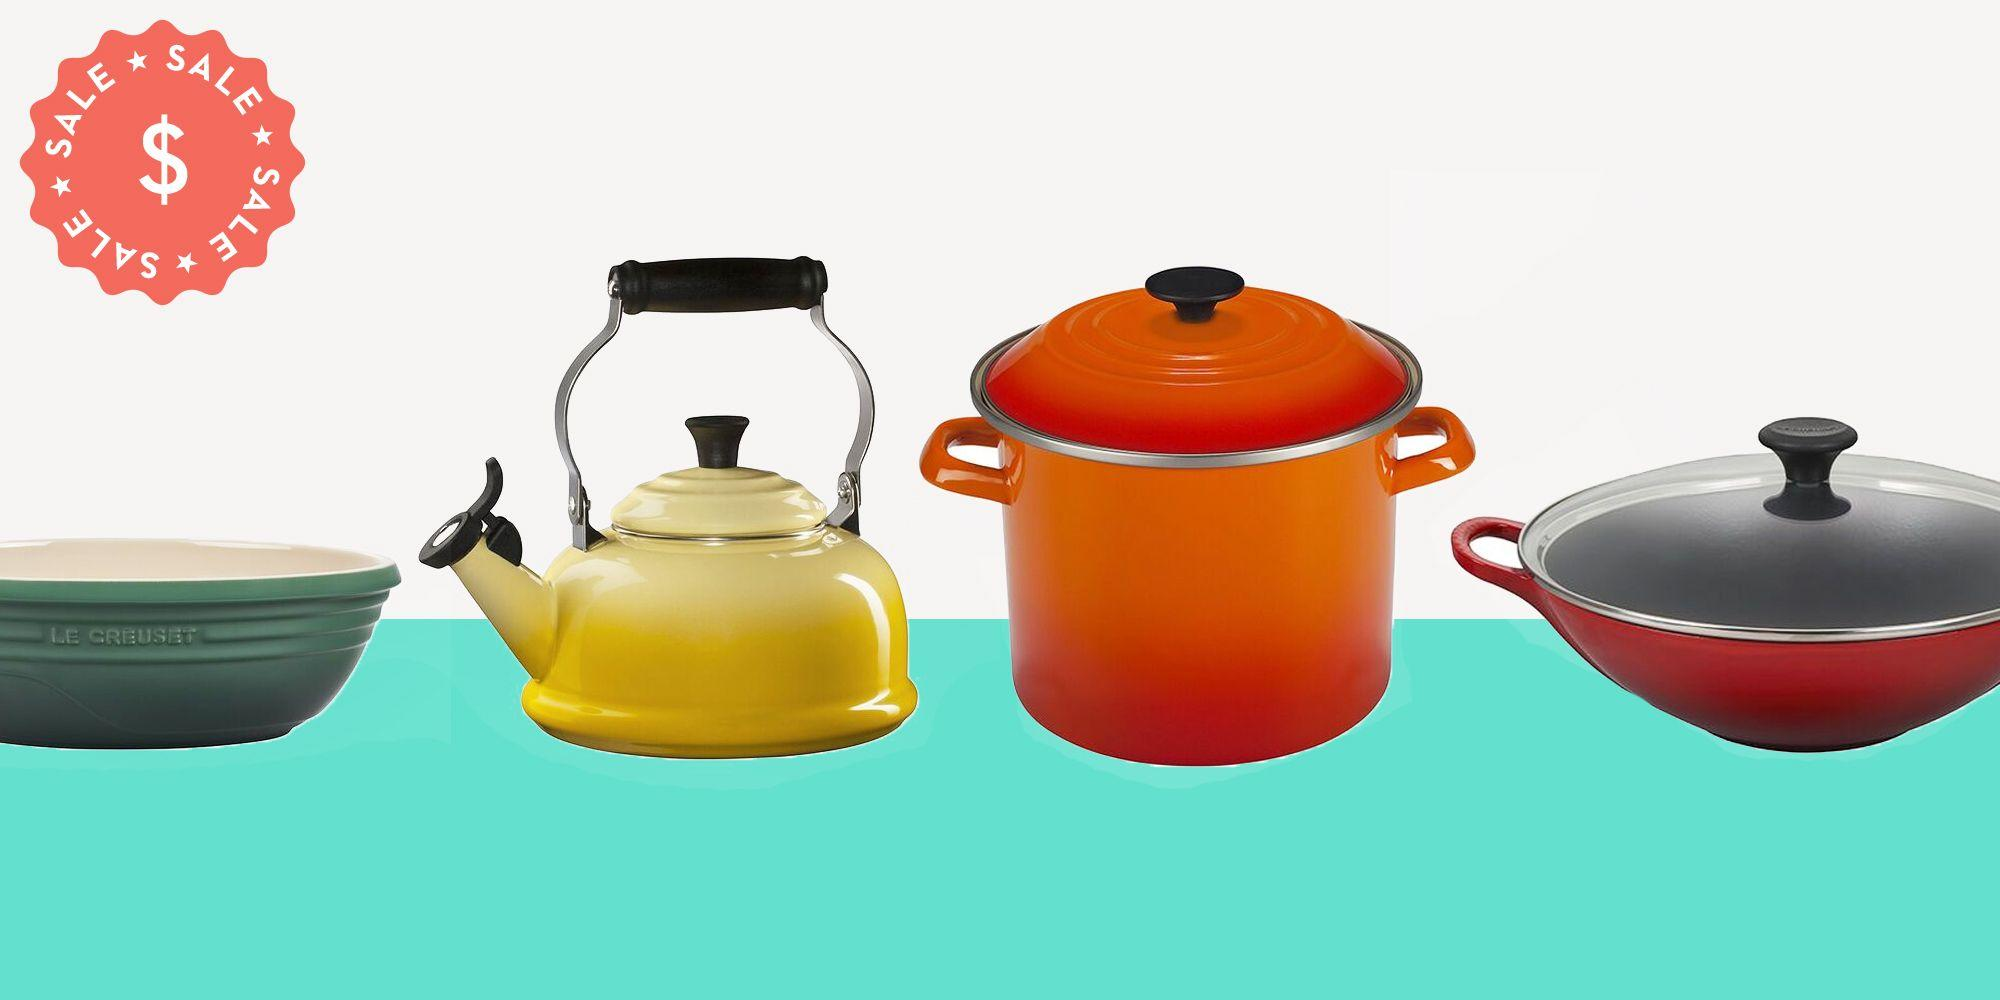 """<p>If the past few months have taught us anything, it's that your cookware is one of the most important investments you can make for your home. (Who would've thought 2020 would be the year we'd flex our culinary muscle?) But, if you're going to stock up on pots and pans, why not buy the best? Now through August 23, <a href=""""https://go.redirectingat.com?id=74968X1596630&url=https%3A%2F%2Fwww.lecreuset.com%2Ffactory-to-table-fall-2020&sref=https%3A%2F%2Fwww.goodhousekeeping.com%2Flife%2Fmoney%2Fg33563225%2Fle-creuset-factory-sale-august-2020%2F"""" rel=""""nofollow noopener"""" target=""""_blank"""" data-ylk=""""slk:Le Creuset is hosting its Factory to Table sale,"""" class=""""link rapid-noclick-resp"""">Le Creuset is hosting its Factory to Table sale, </a>where you can save up to 70% off the brand's popular products. </p><p>With a cast-iron interior and colorful enamel exterior, Le Creuset is the gold standard of cookware. It doesn't matter if you want to replace all your ho-hum cookware or pick up Le Creuset's popular <a href=""""https://go.redirectingat.com?id=74968X1596630&url=https%3A%2F%2Fwww.lecreuset.com%2Fround-wide-dutch-oven---factory-to-table-sale-3-1-2-qt.%2FLS2552-FTT.html&sref=https%3A%2F%2Fwww.goodhousekeeping.com%2Flife%2Fmoney%2Fg33563225%2Fle-creuset-factory-sale-august-2020%2F"""" rel=""""nofollow noopener"""" target=""""_blank"""" data-ylk=""""slk:Dutch Oven,"""" class=""""link rapid-noclick-resp"""">Dutch Oven,</a> <a href=""""https://go.redirectingat.com?id=74968X1596630&url=https%3A%2F%2Fwww.lecreuset.com%2Ffactory-to-table-fall-2020&sref=https%3A%2F%2Fwww.goodhousekeeping.com%2Flife%2Fmoney%2Fg33563225%2Fle-creuset-factory-sale-august-2020%2F"""" rel=""""nofollow noopener"""" target=""""_blank"""" data-ylk=""""slk:the Factory to Table sale"""" class=""""link rapid-noclick-resp"""">the Factory to Table sale</a> has something for every home chef—and at a steep discount, no less. Go ahead, check out these awesome deals below. All you have to do is add your favorites to your cart and watch those deals come pouring in...</p>"""